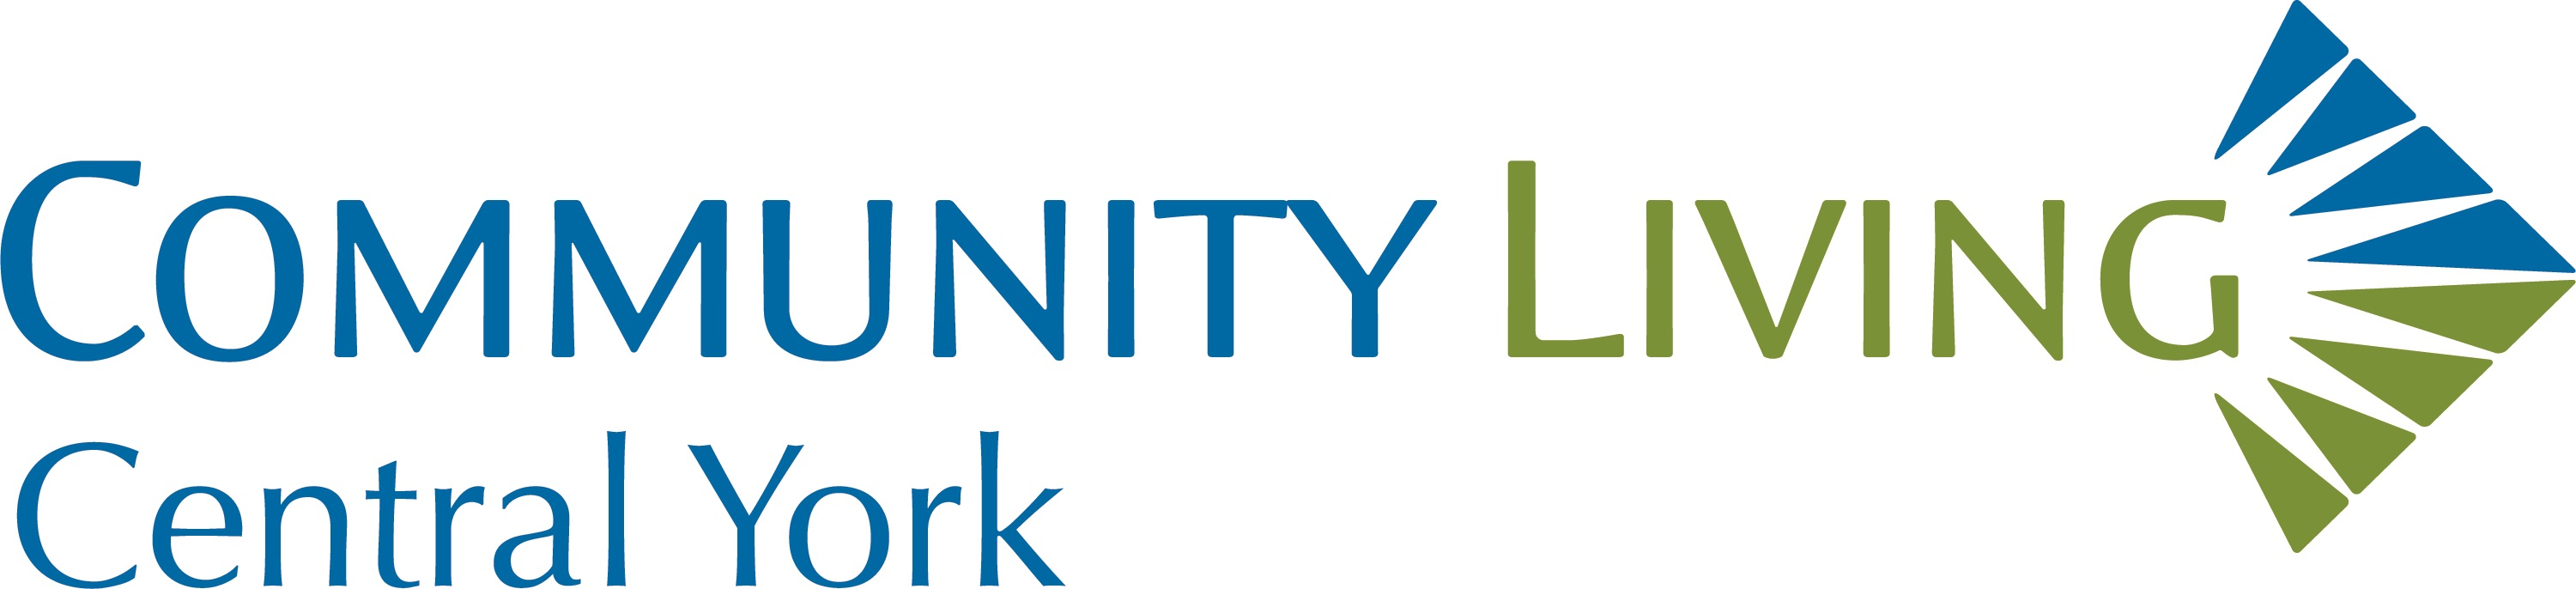 Community Living Central York (CLCY)